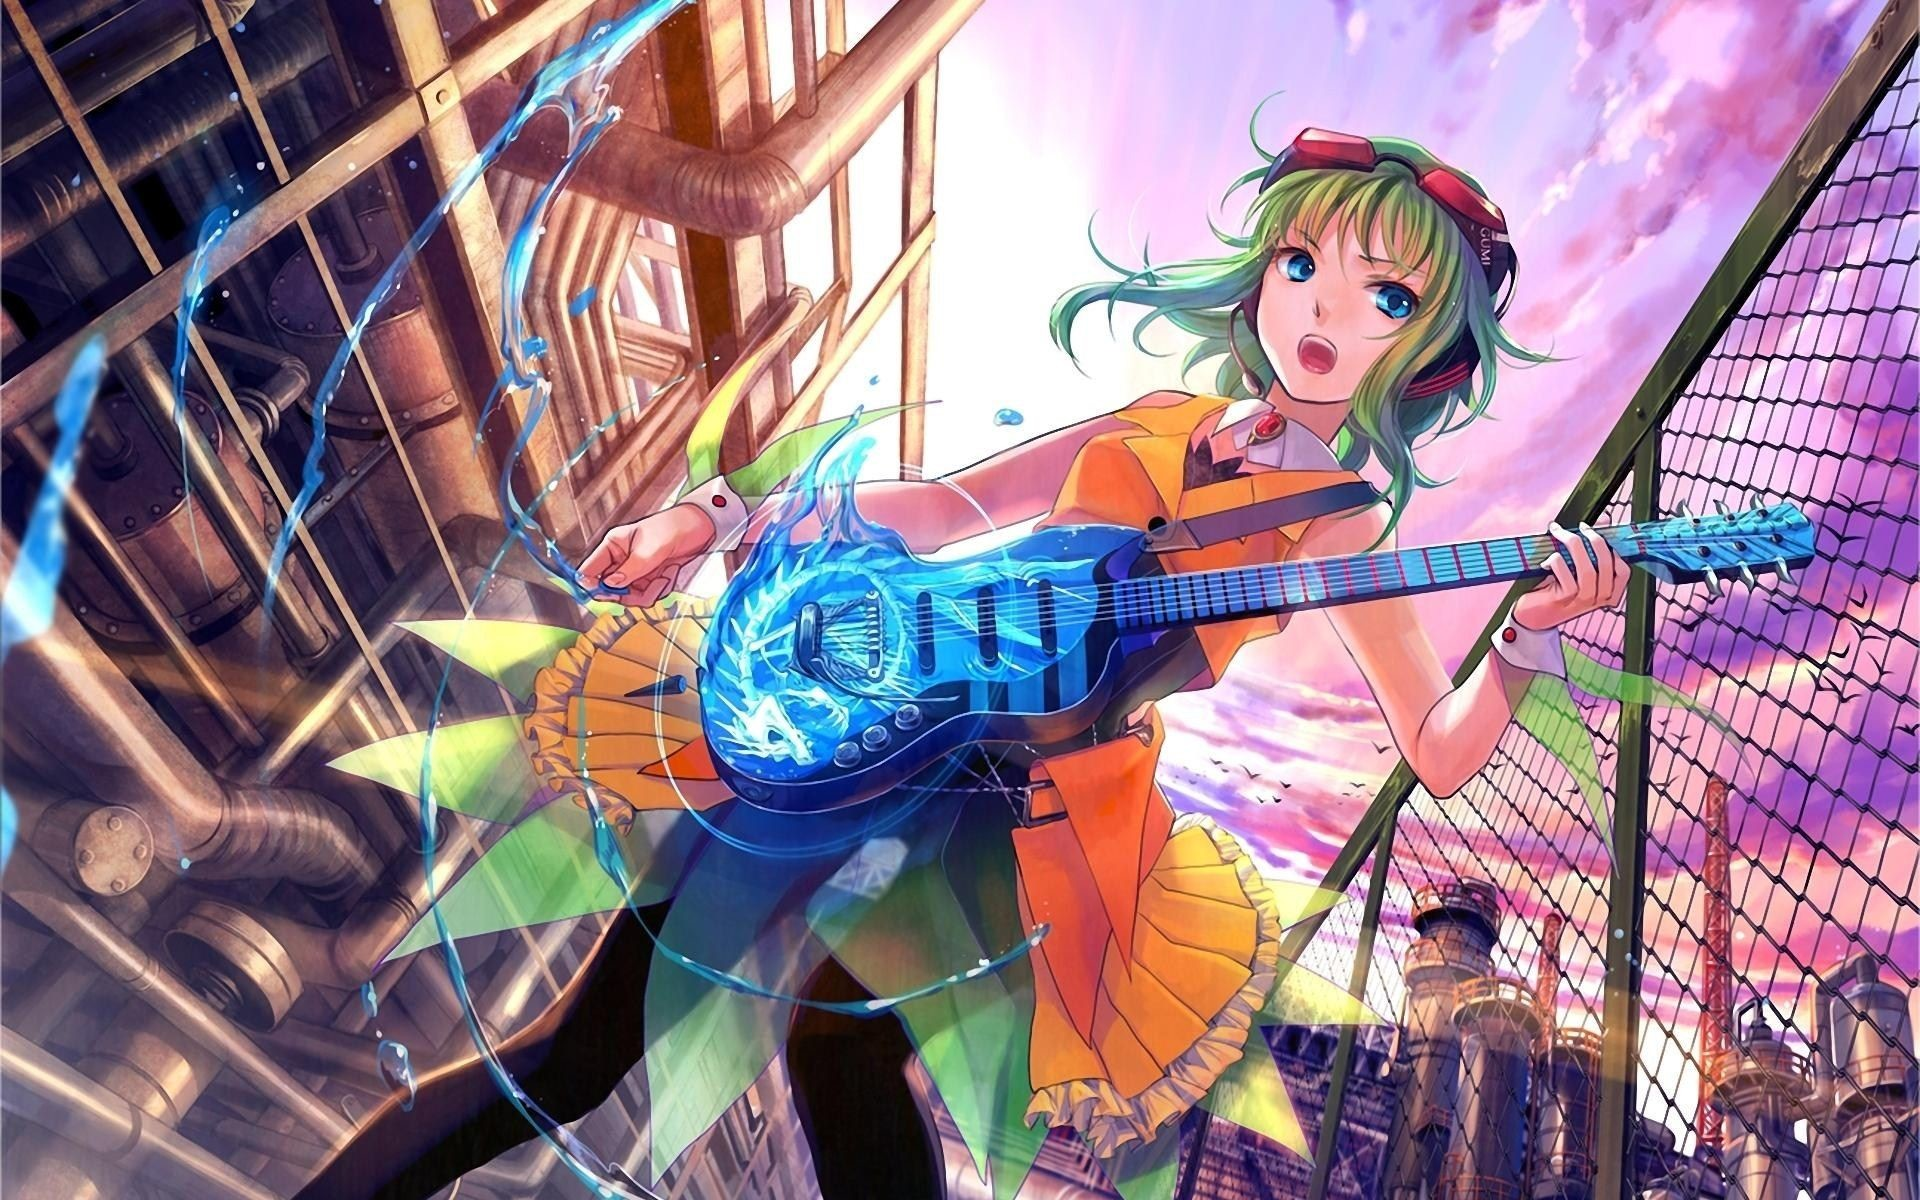 Res: 1920x1200, Anime Girl Guitar HD Wallpaper - ZoomWalls